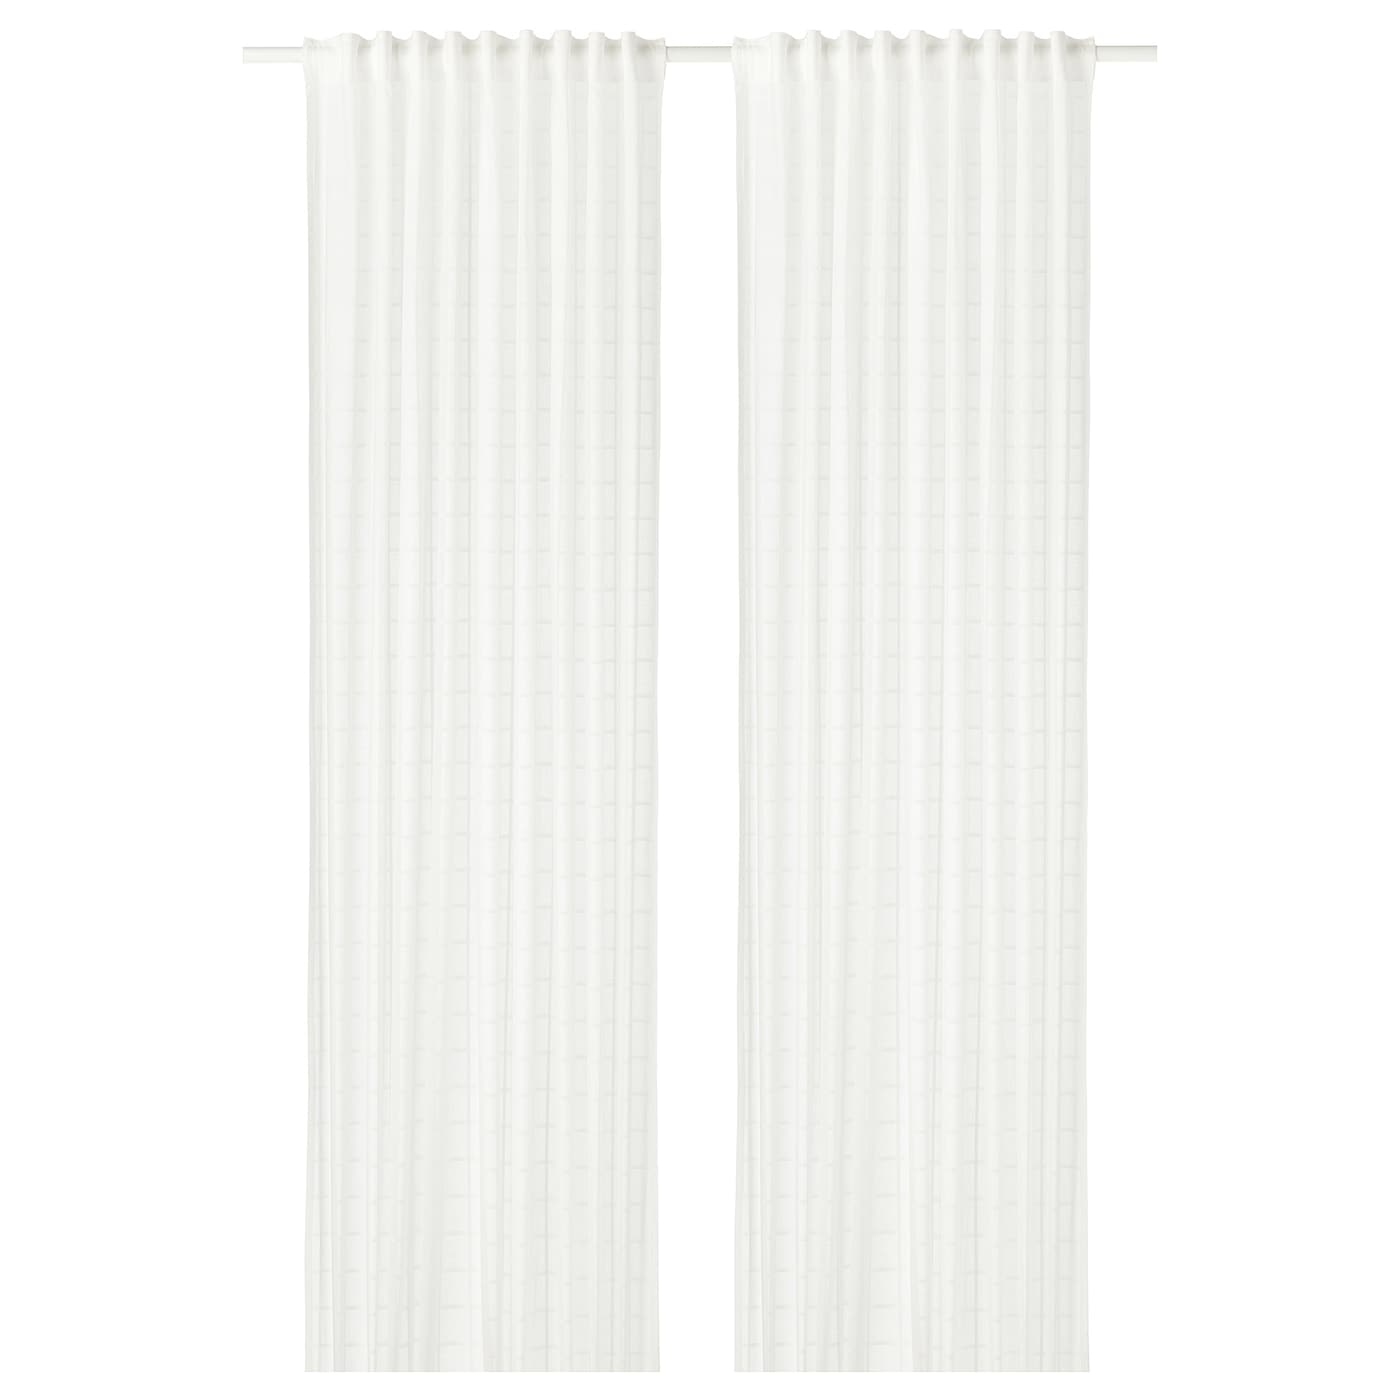 bergitte sheer curtains 1 pair white 140 x 300 cm ikea